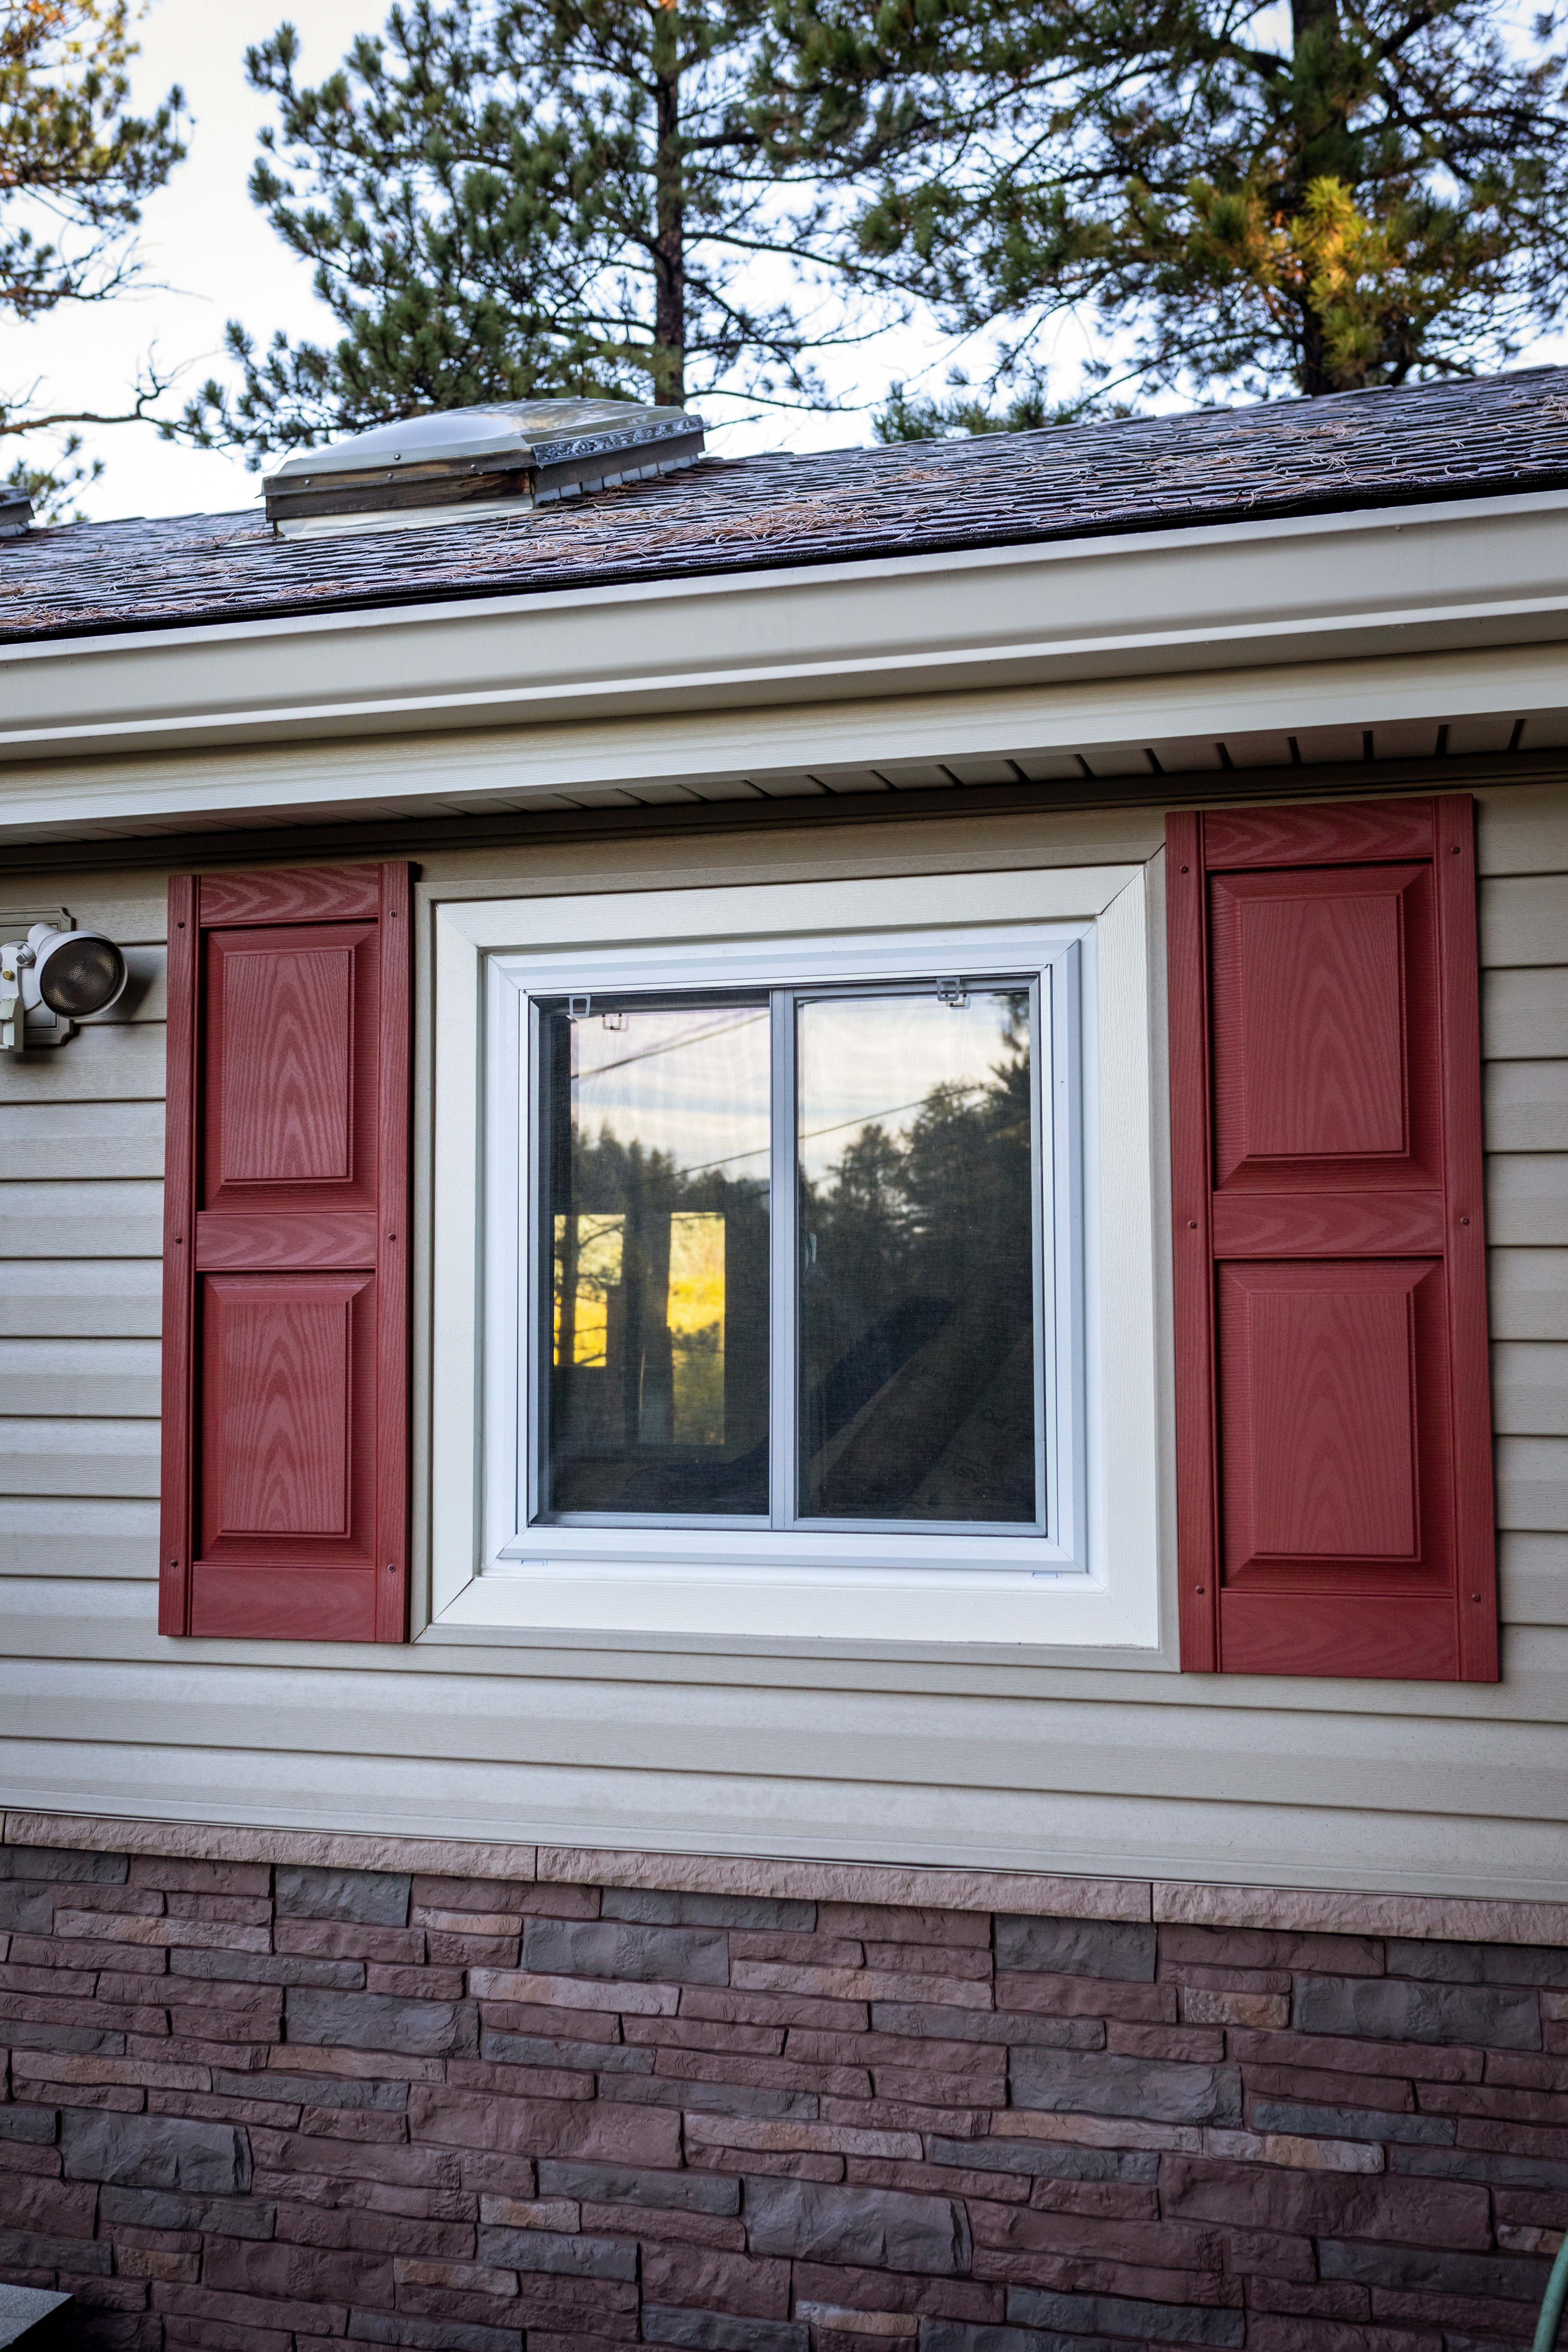 The Red In The Stone Pairs Nicely With The Red Shutters Making The Home Much More Cohesive Windows Stone Windows Red Shutters Home Improvement Contractors